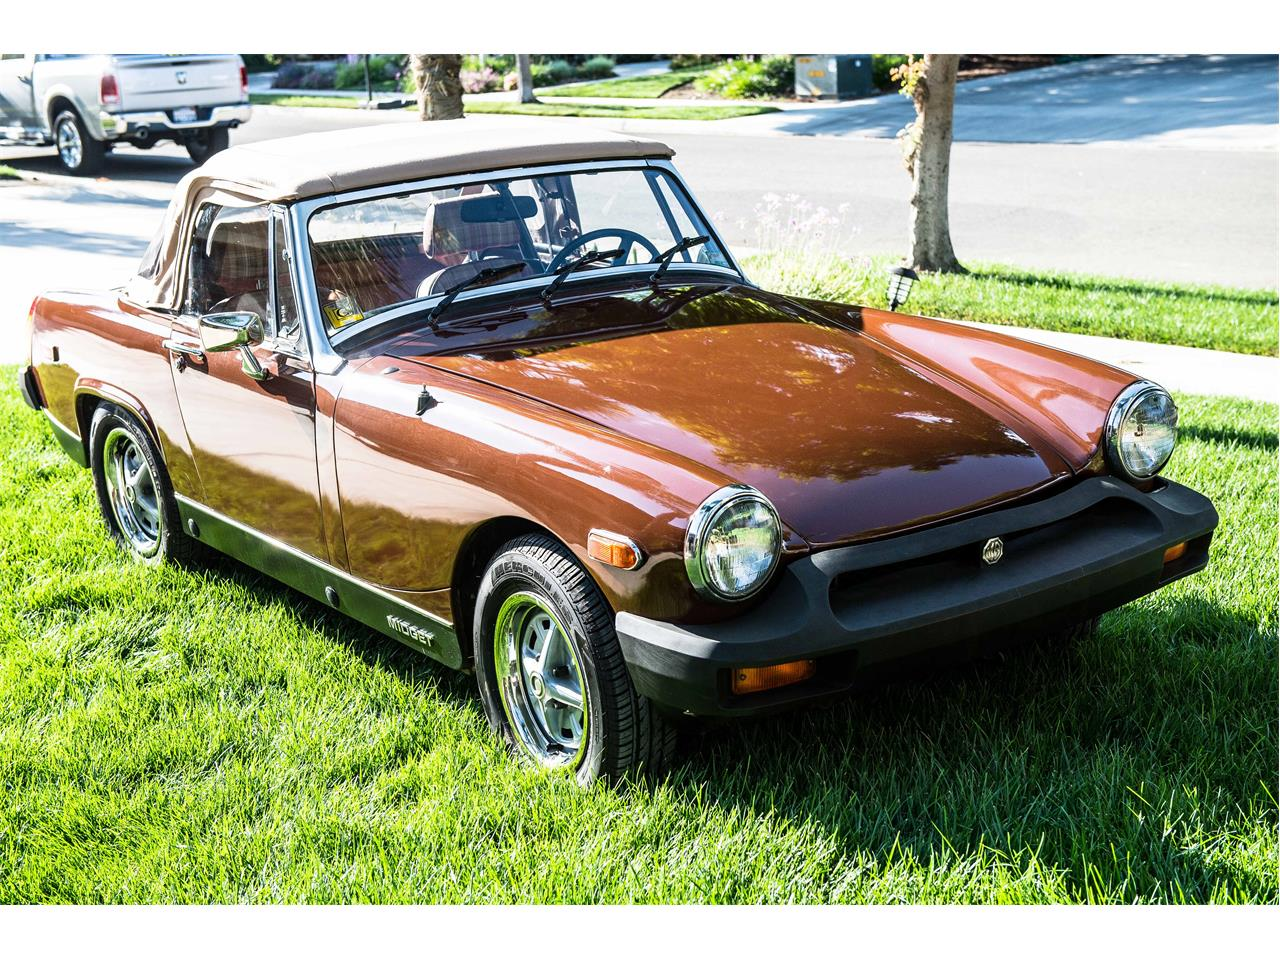 1978 MG Midget for sale in EXETER, CA